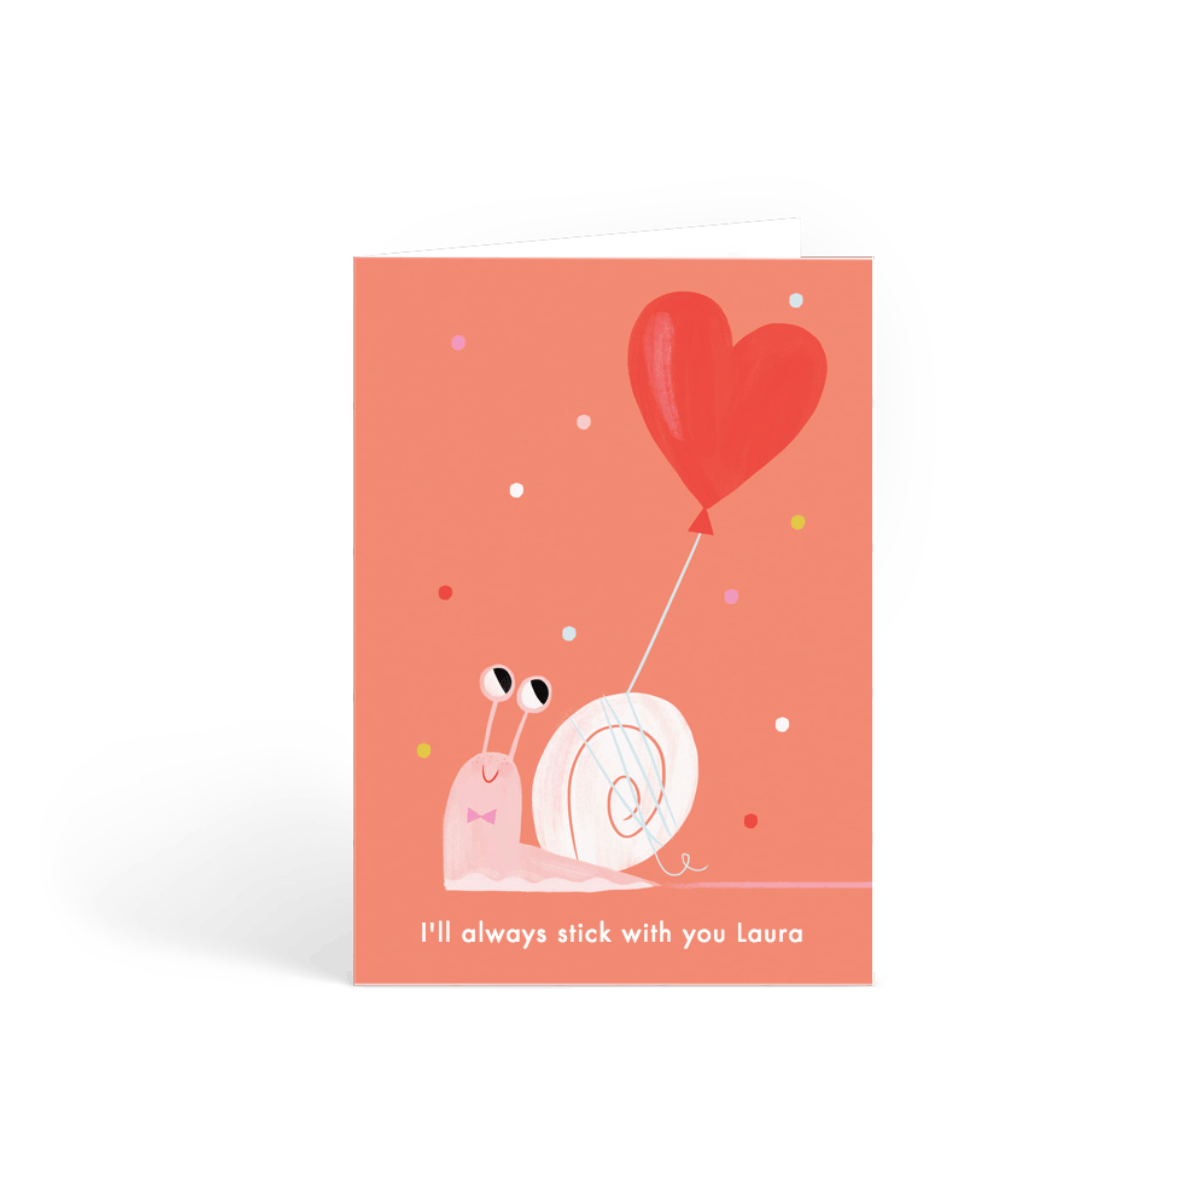 Https%3a%2f%2fwww.papier.com%2fproduct image%2f16221%2f2%2fspecial delivery snail 4289 avant 1484584384.png?ixlib=rb 1.1